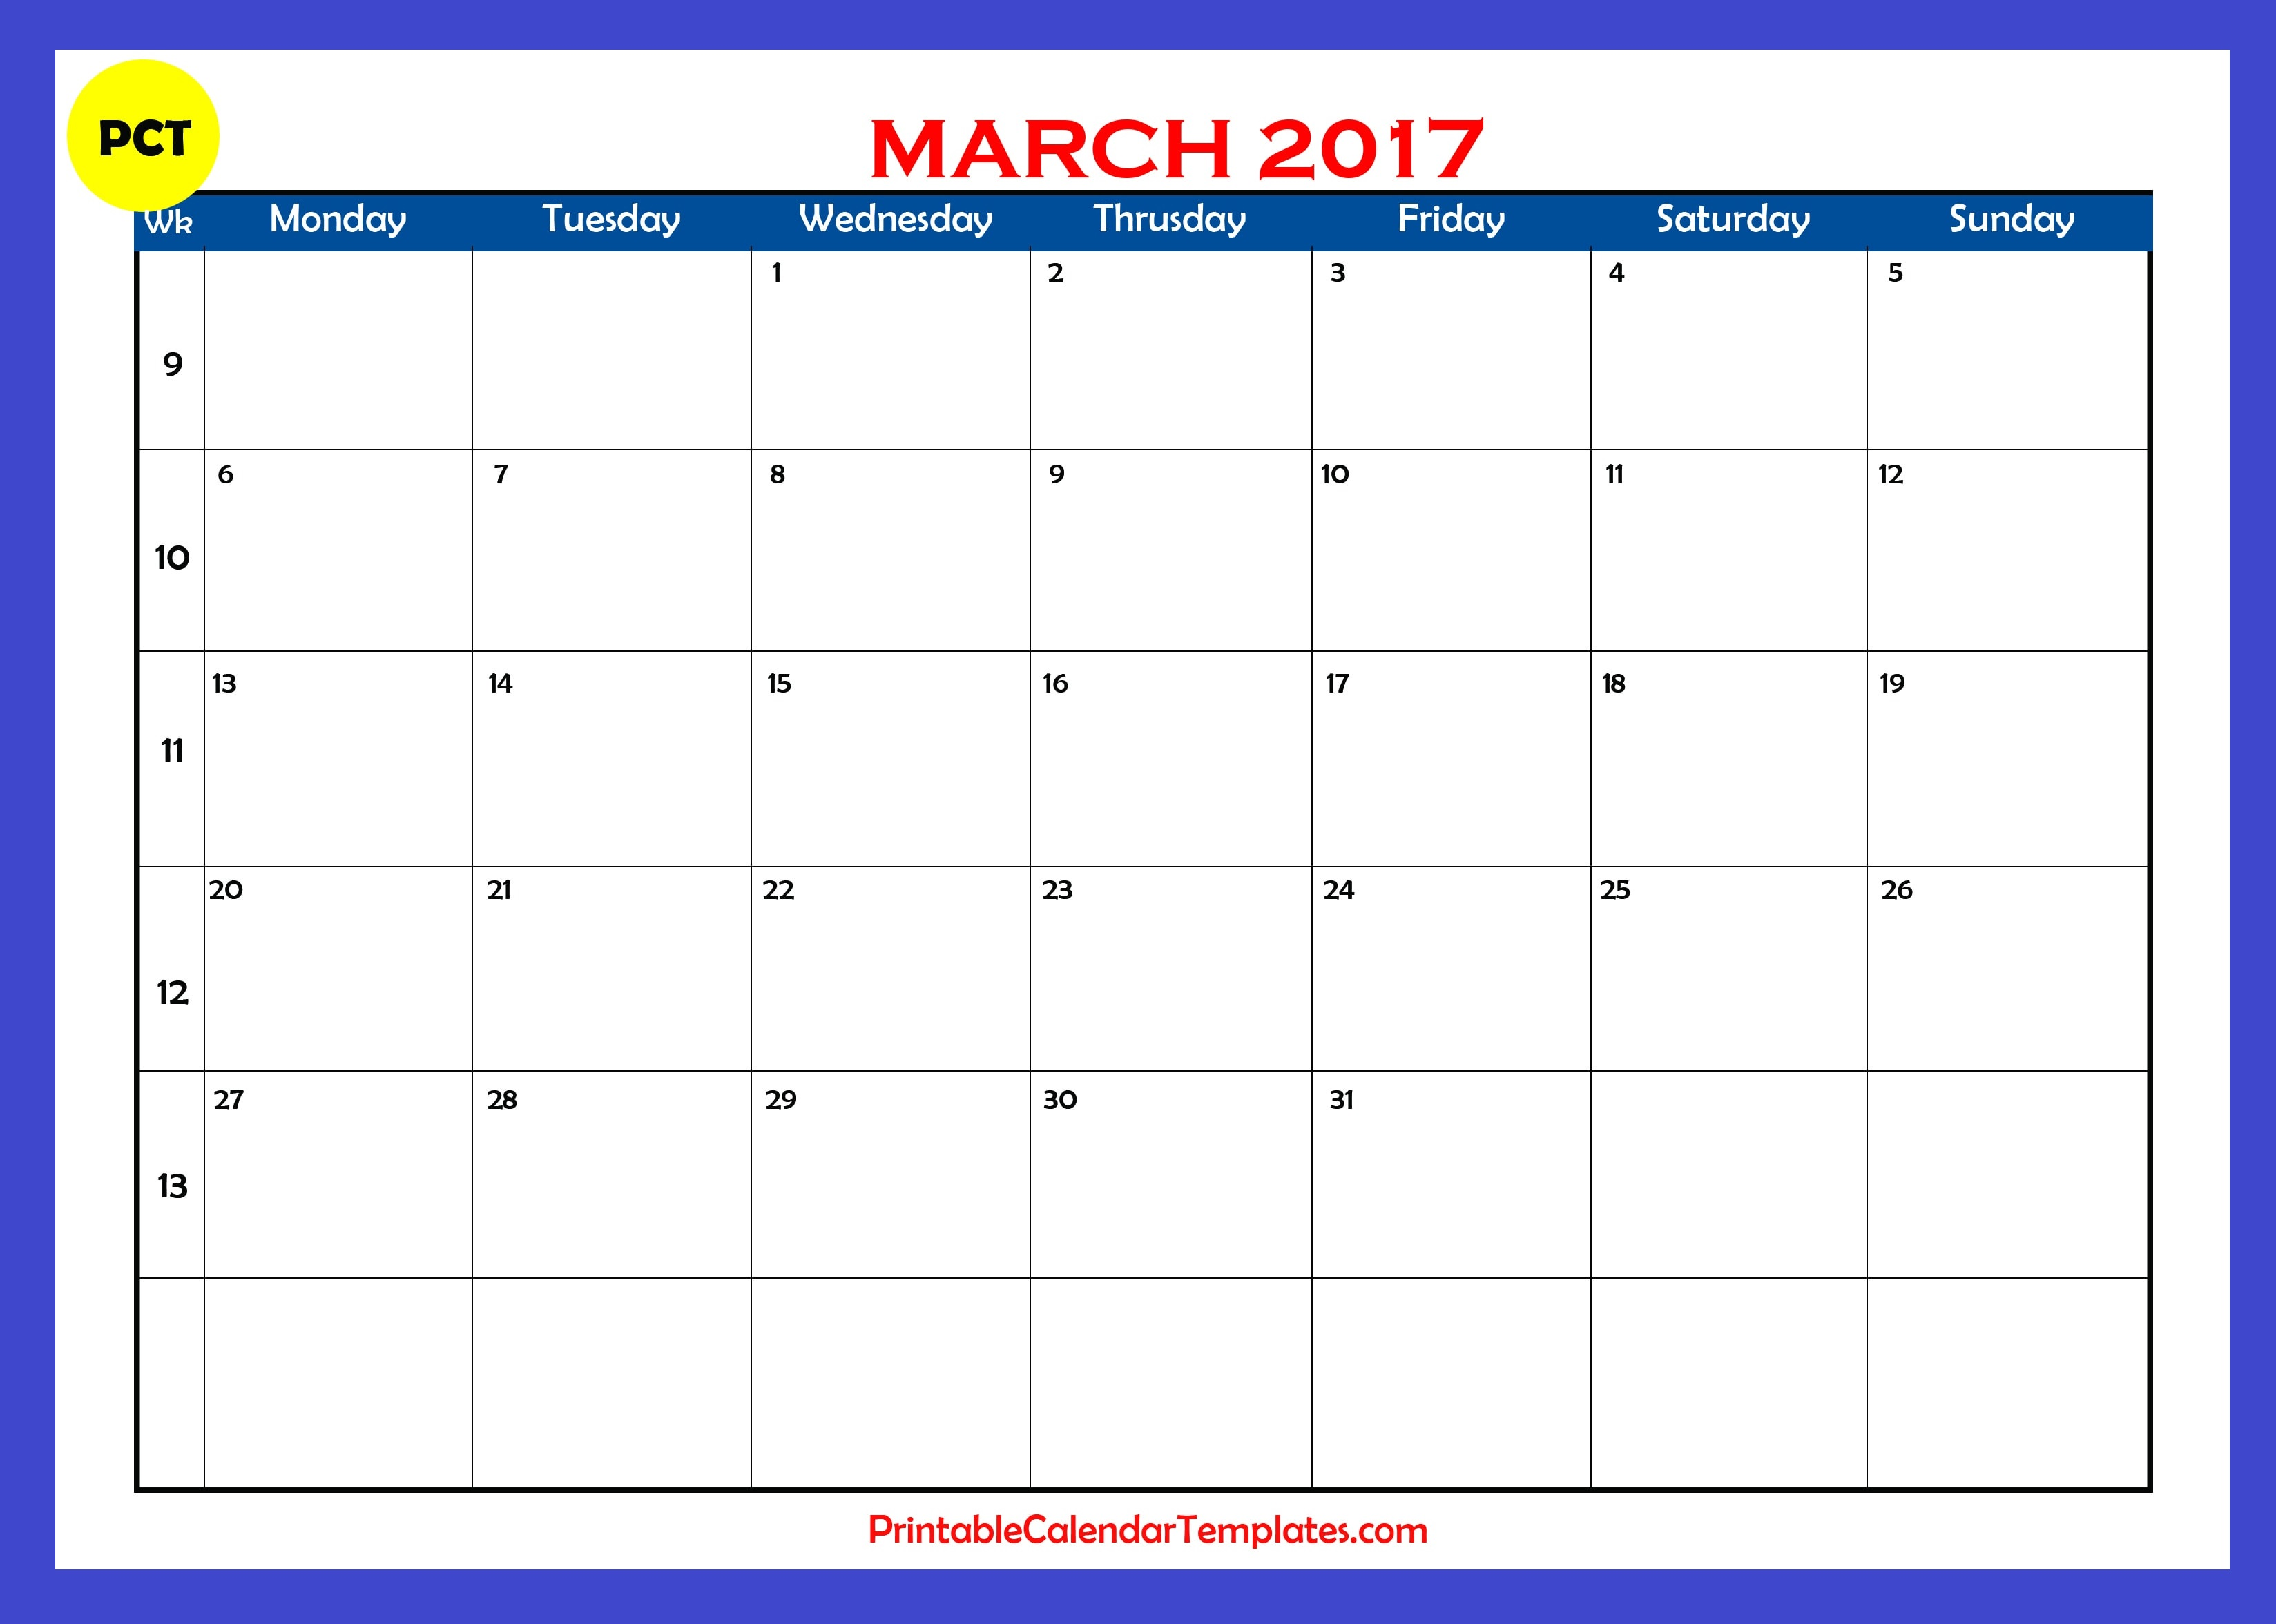 March 2017 Calendar Printable Printable Calendar Templates